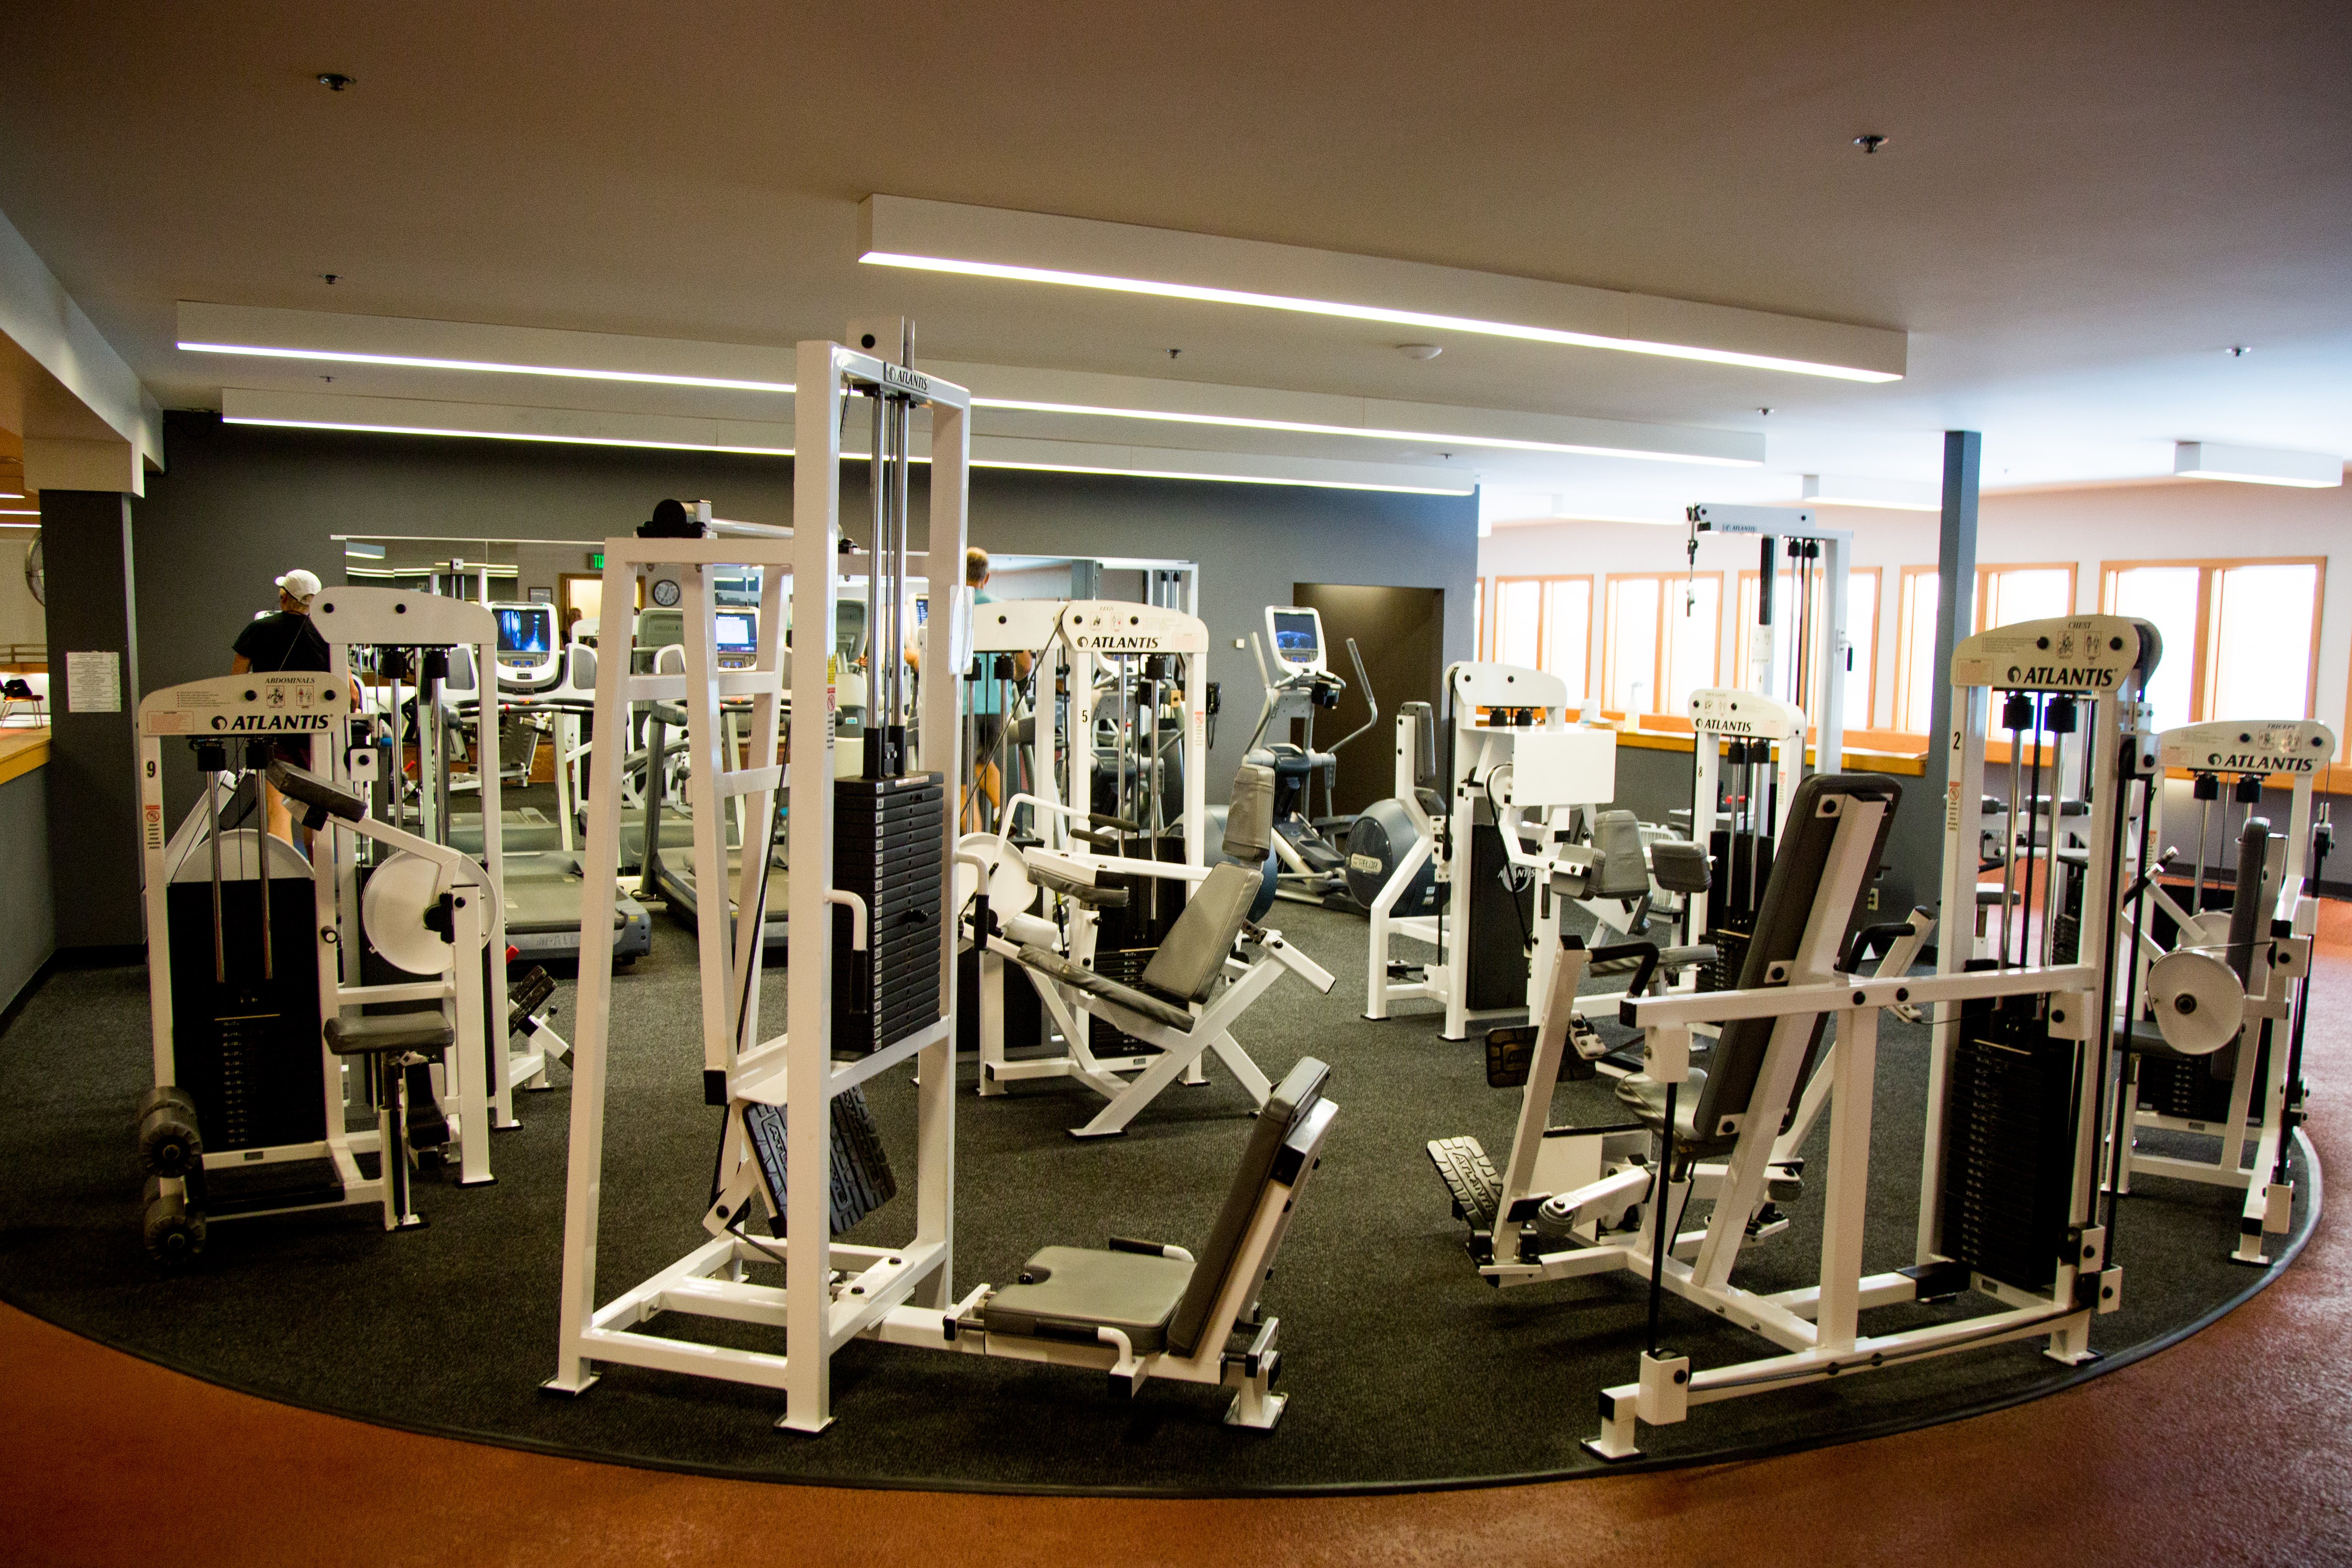 Keep up your healthy habits in the fitness center, which offers exercise machines, running track, and drop-in fitness classes for resort guests.<p></p>